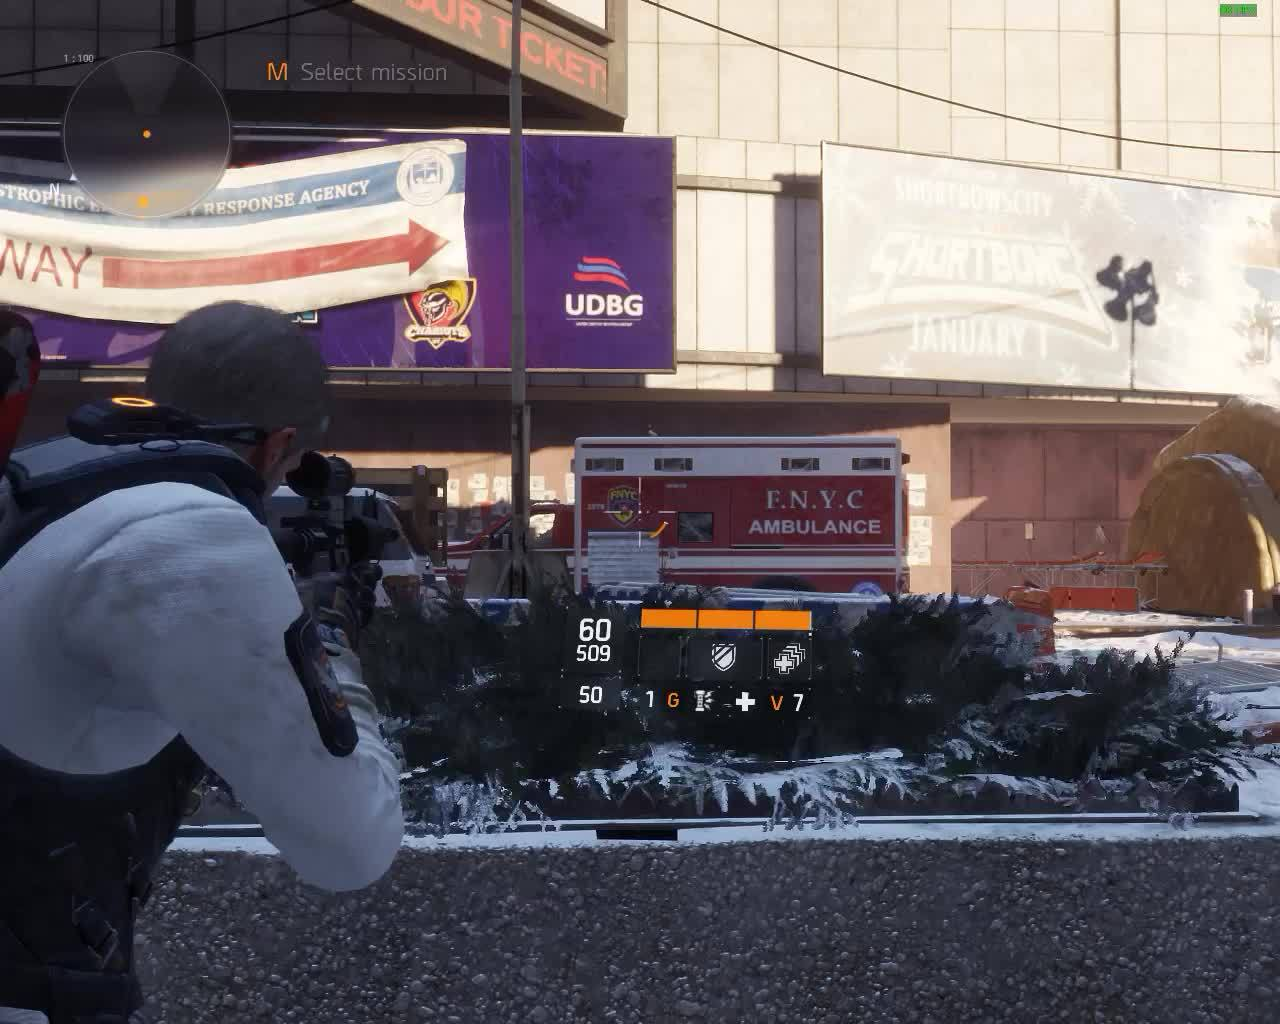 thedivision, Police M4 with attachment GIFs